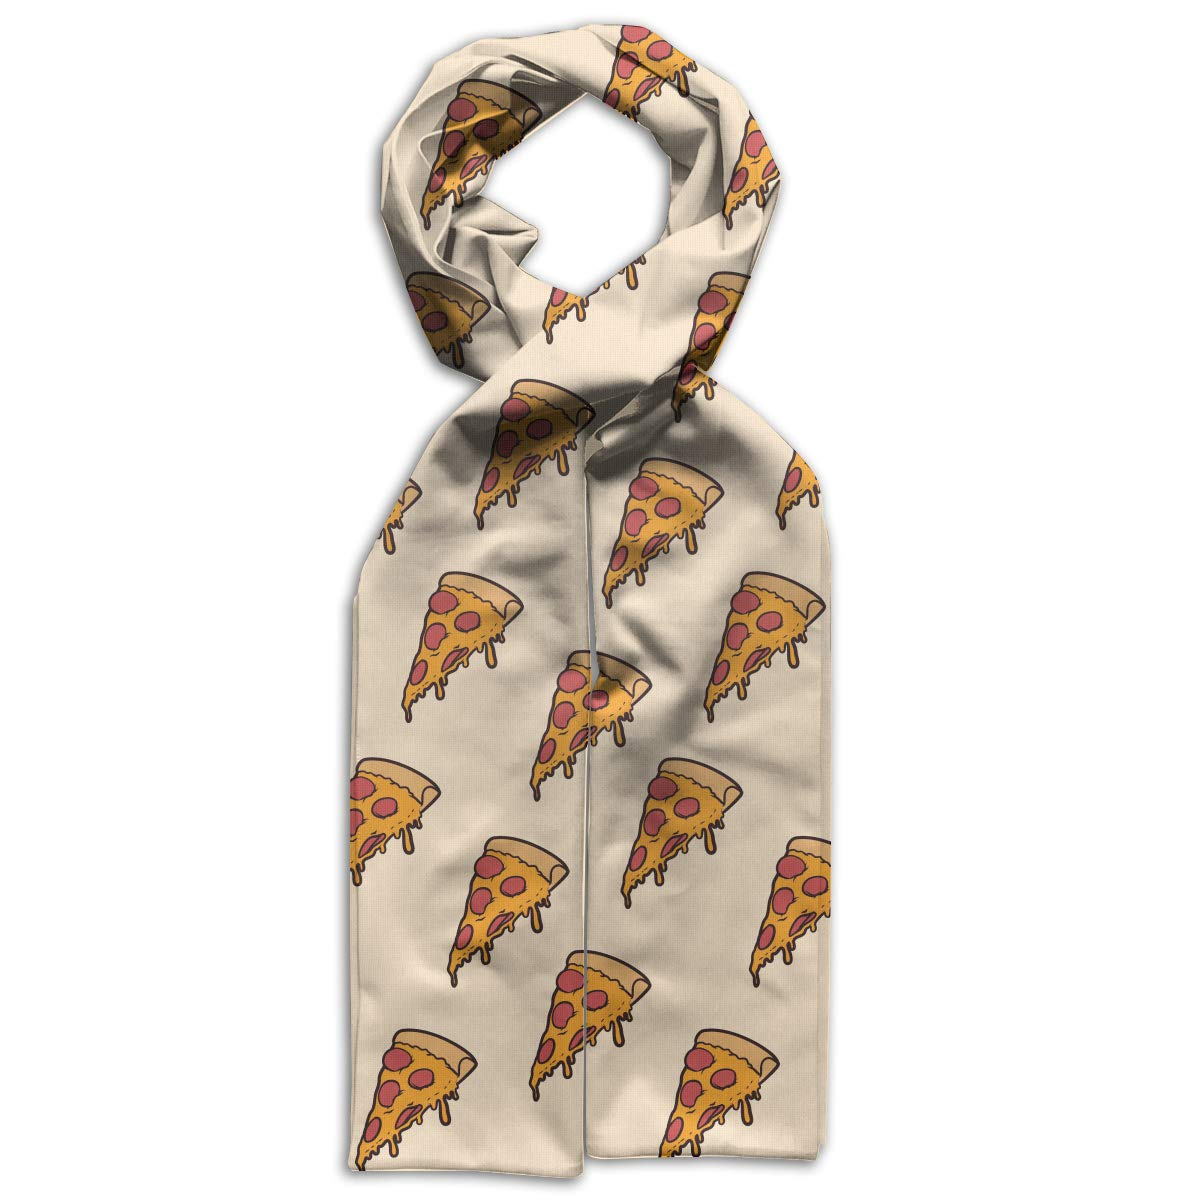 Delicious Pizza Pattern Kids Printed Scarf Soft Winter Infinity Scarf Warmer Travel Scarf For Kids Perfect Birthday Gift